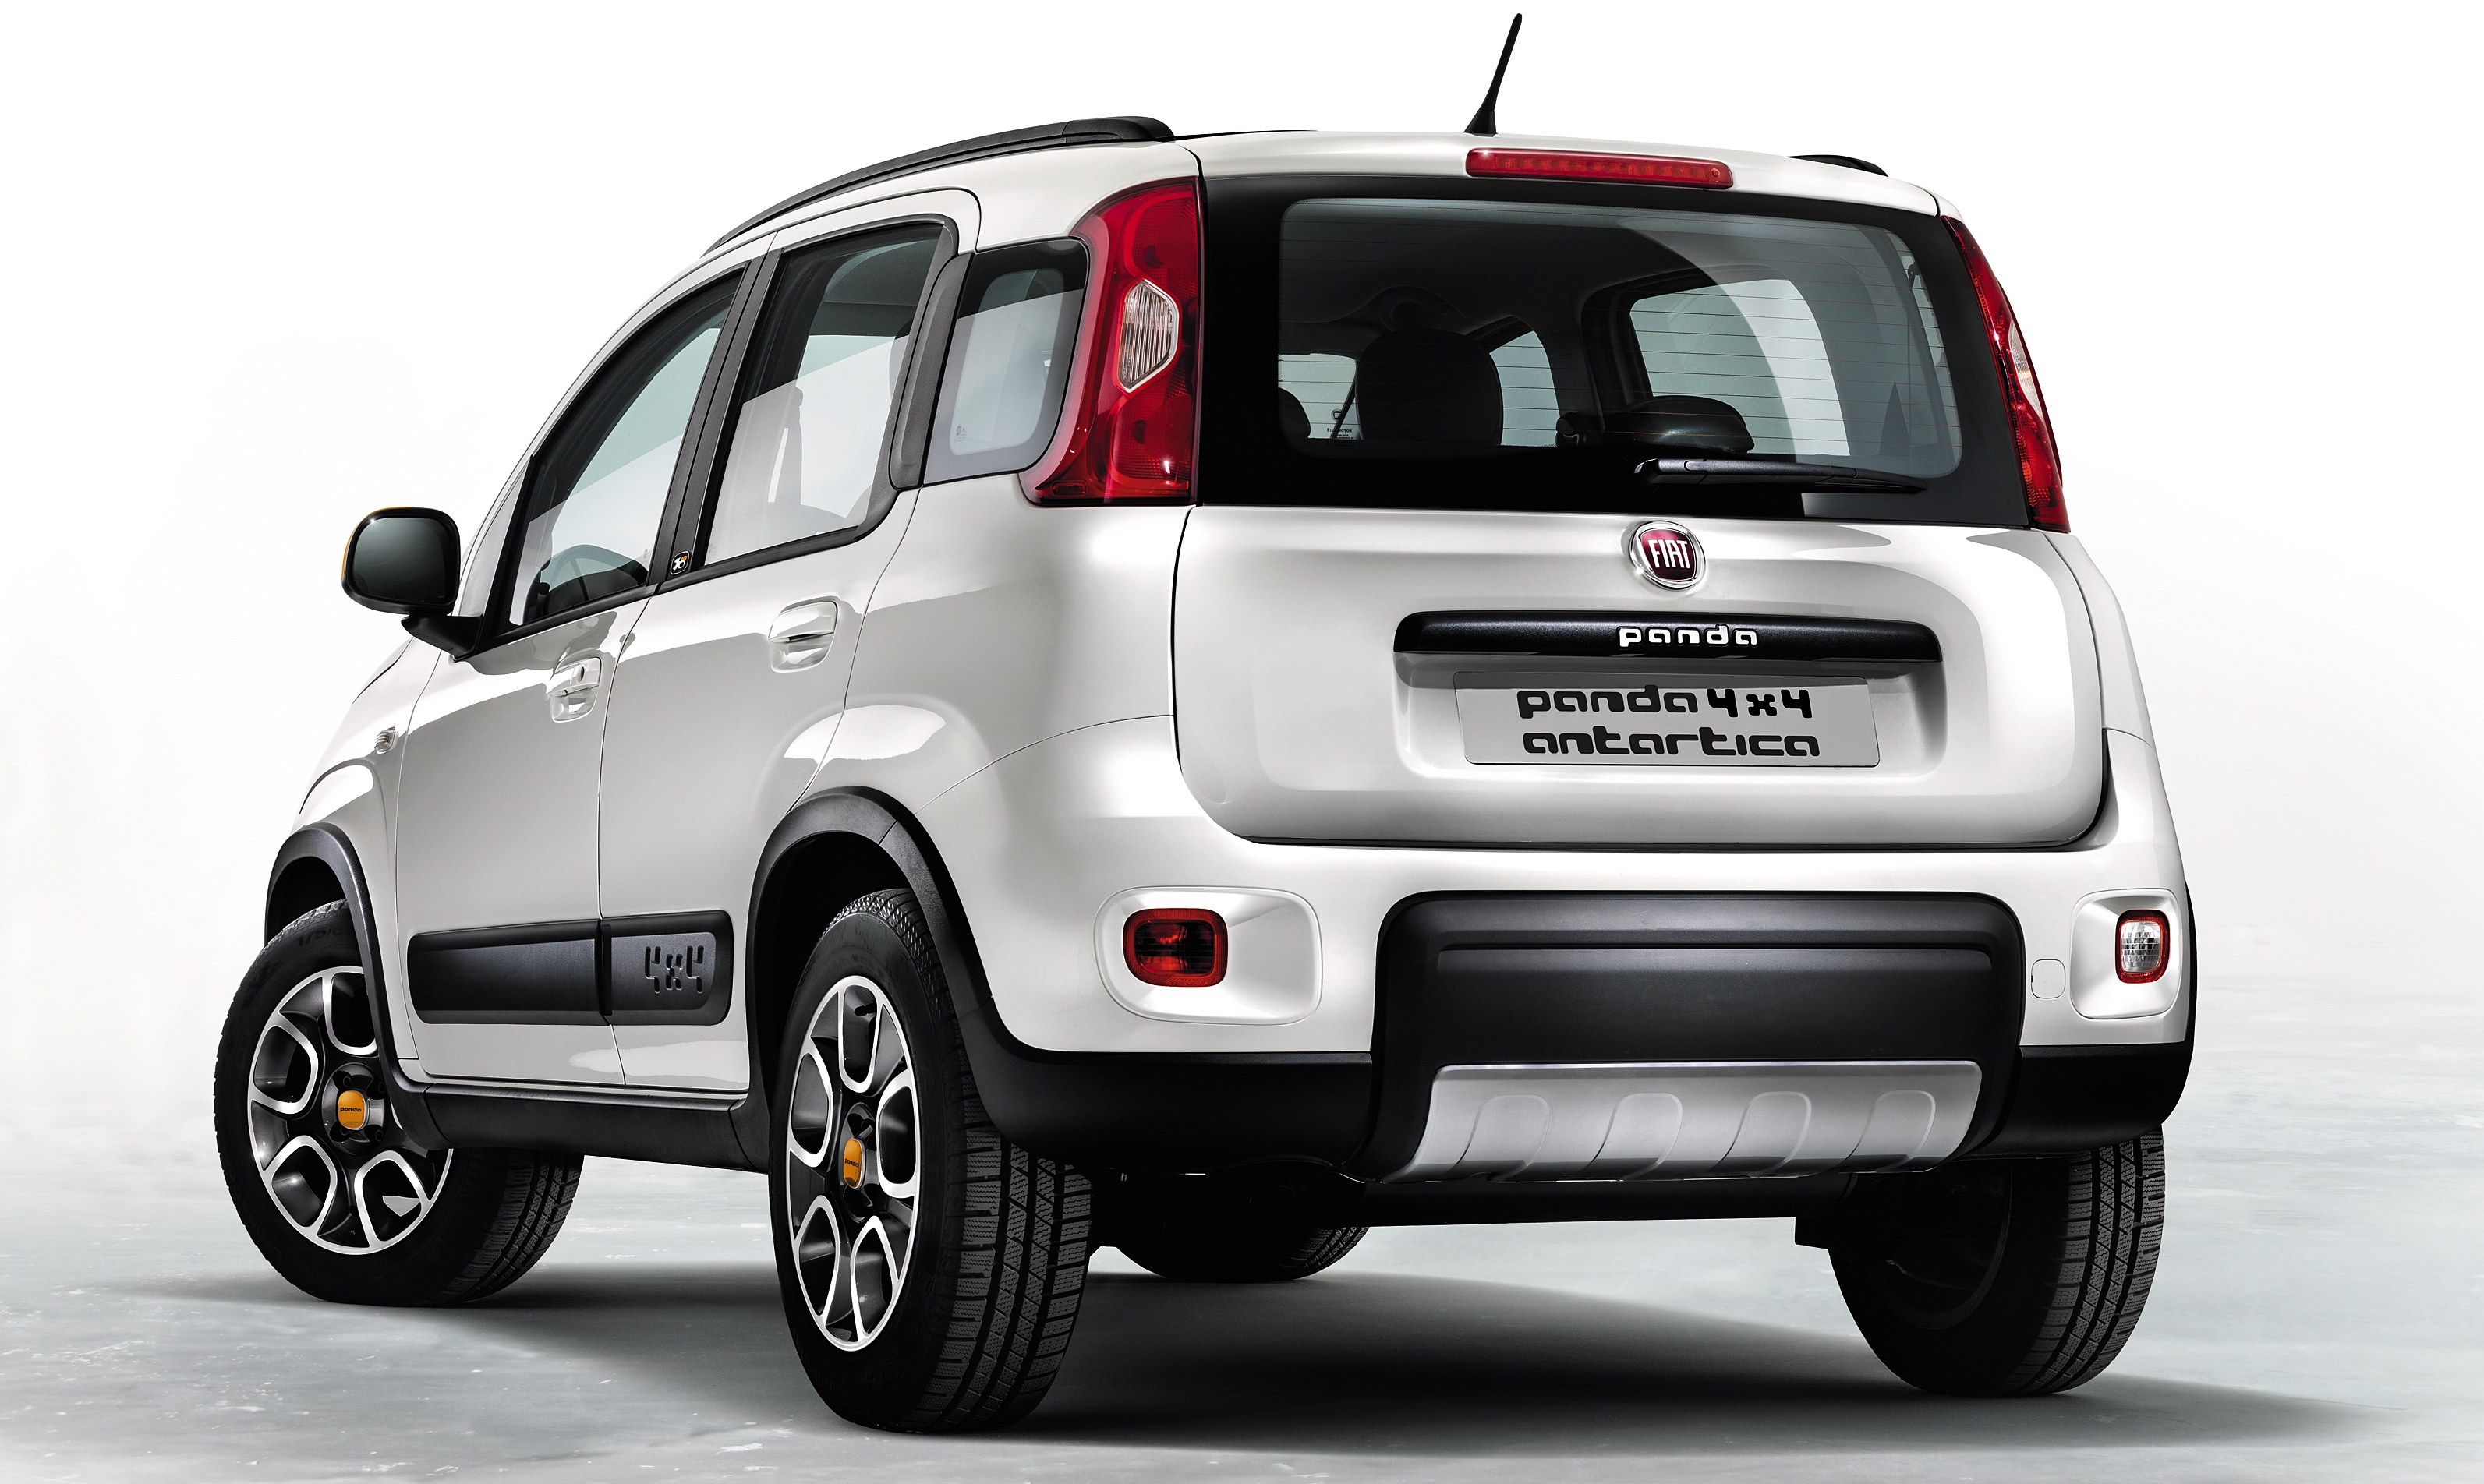 fiat panda 4x4 antartica celebrating 30 years of the panda. Black Bedroom Furniture Sets. Home Design Ideas